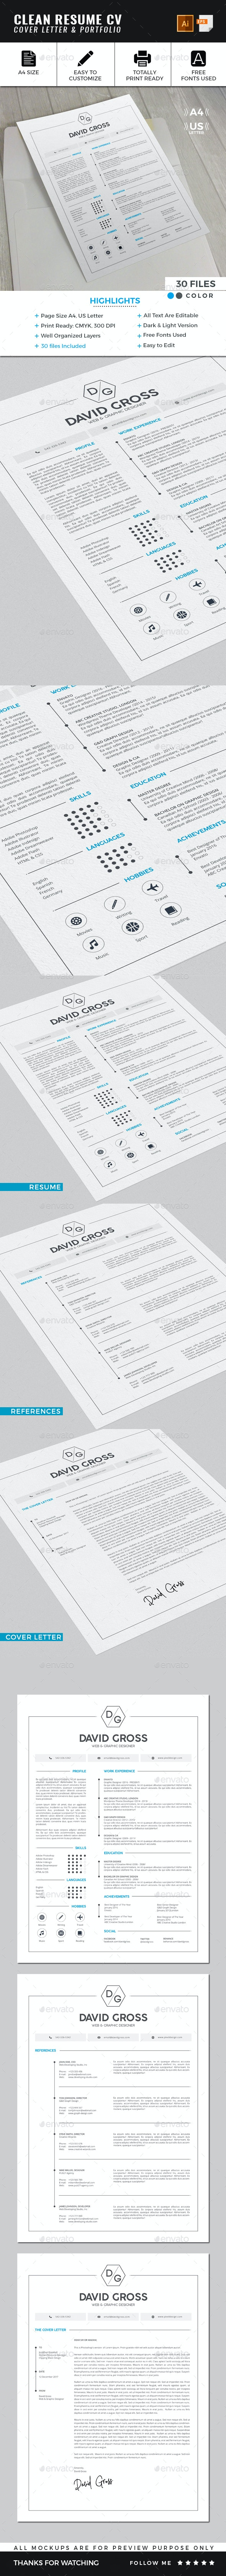 Clean Resume CV Template - Resumes Stationery